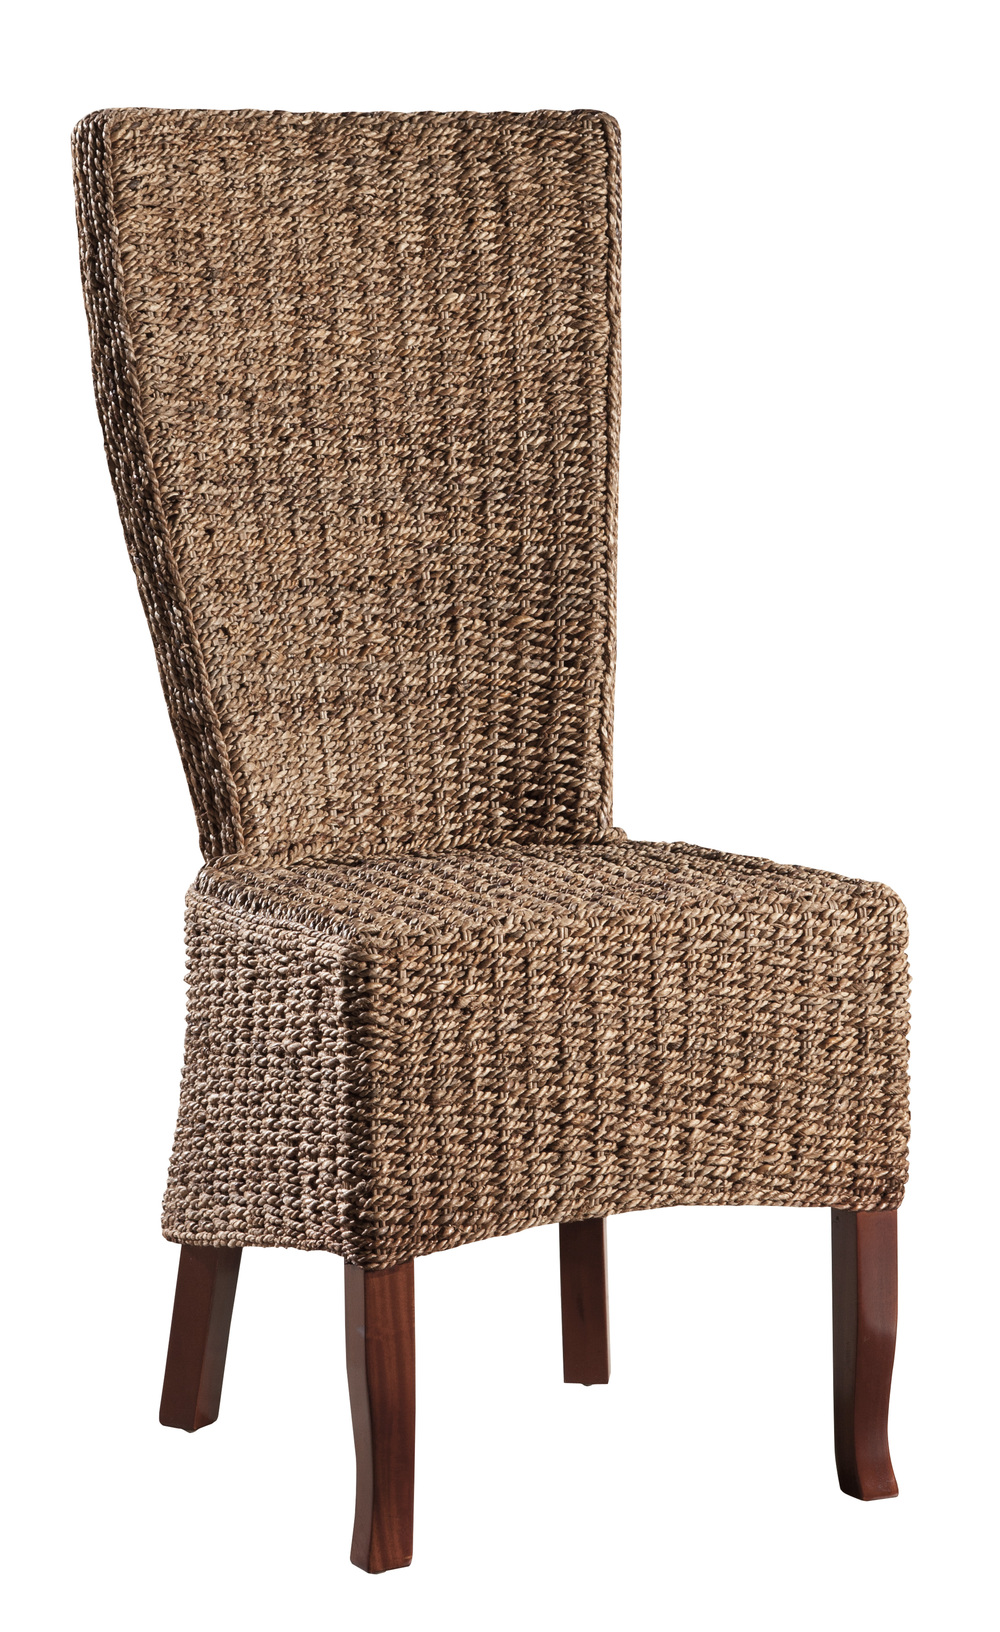 Furniture Classics Limited - Madura Dining Chair